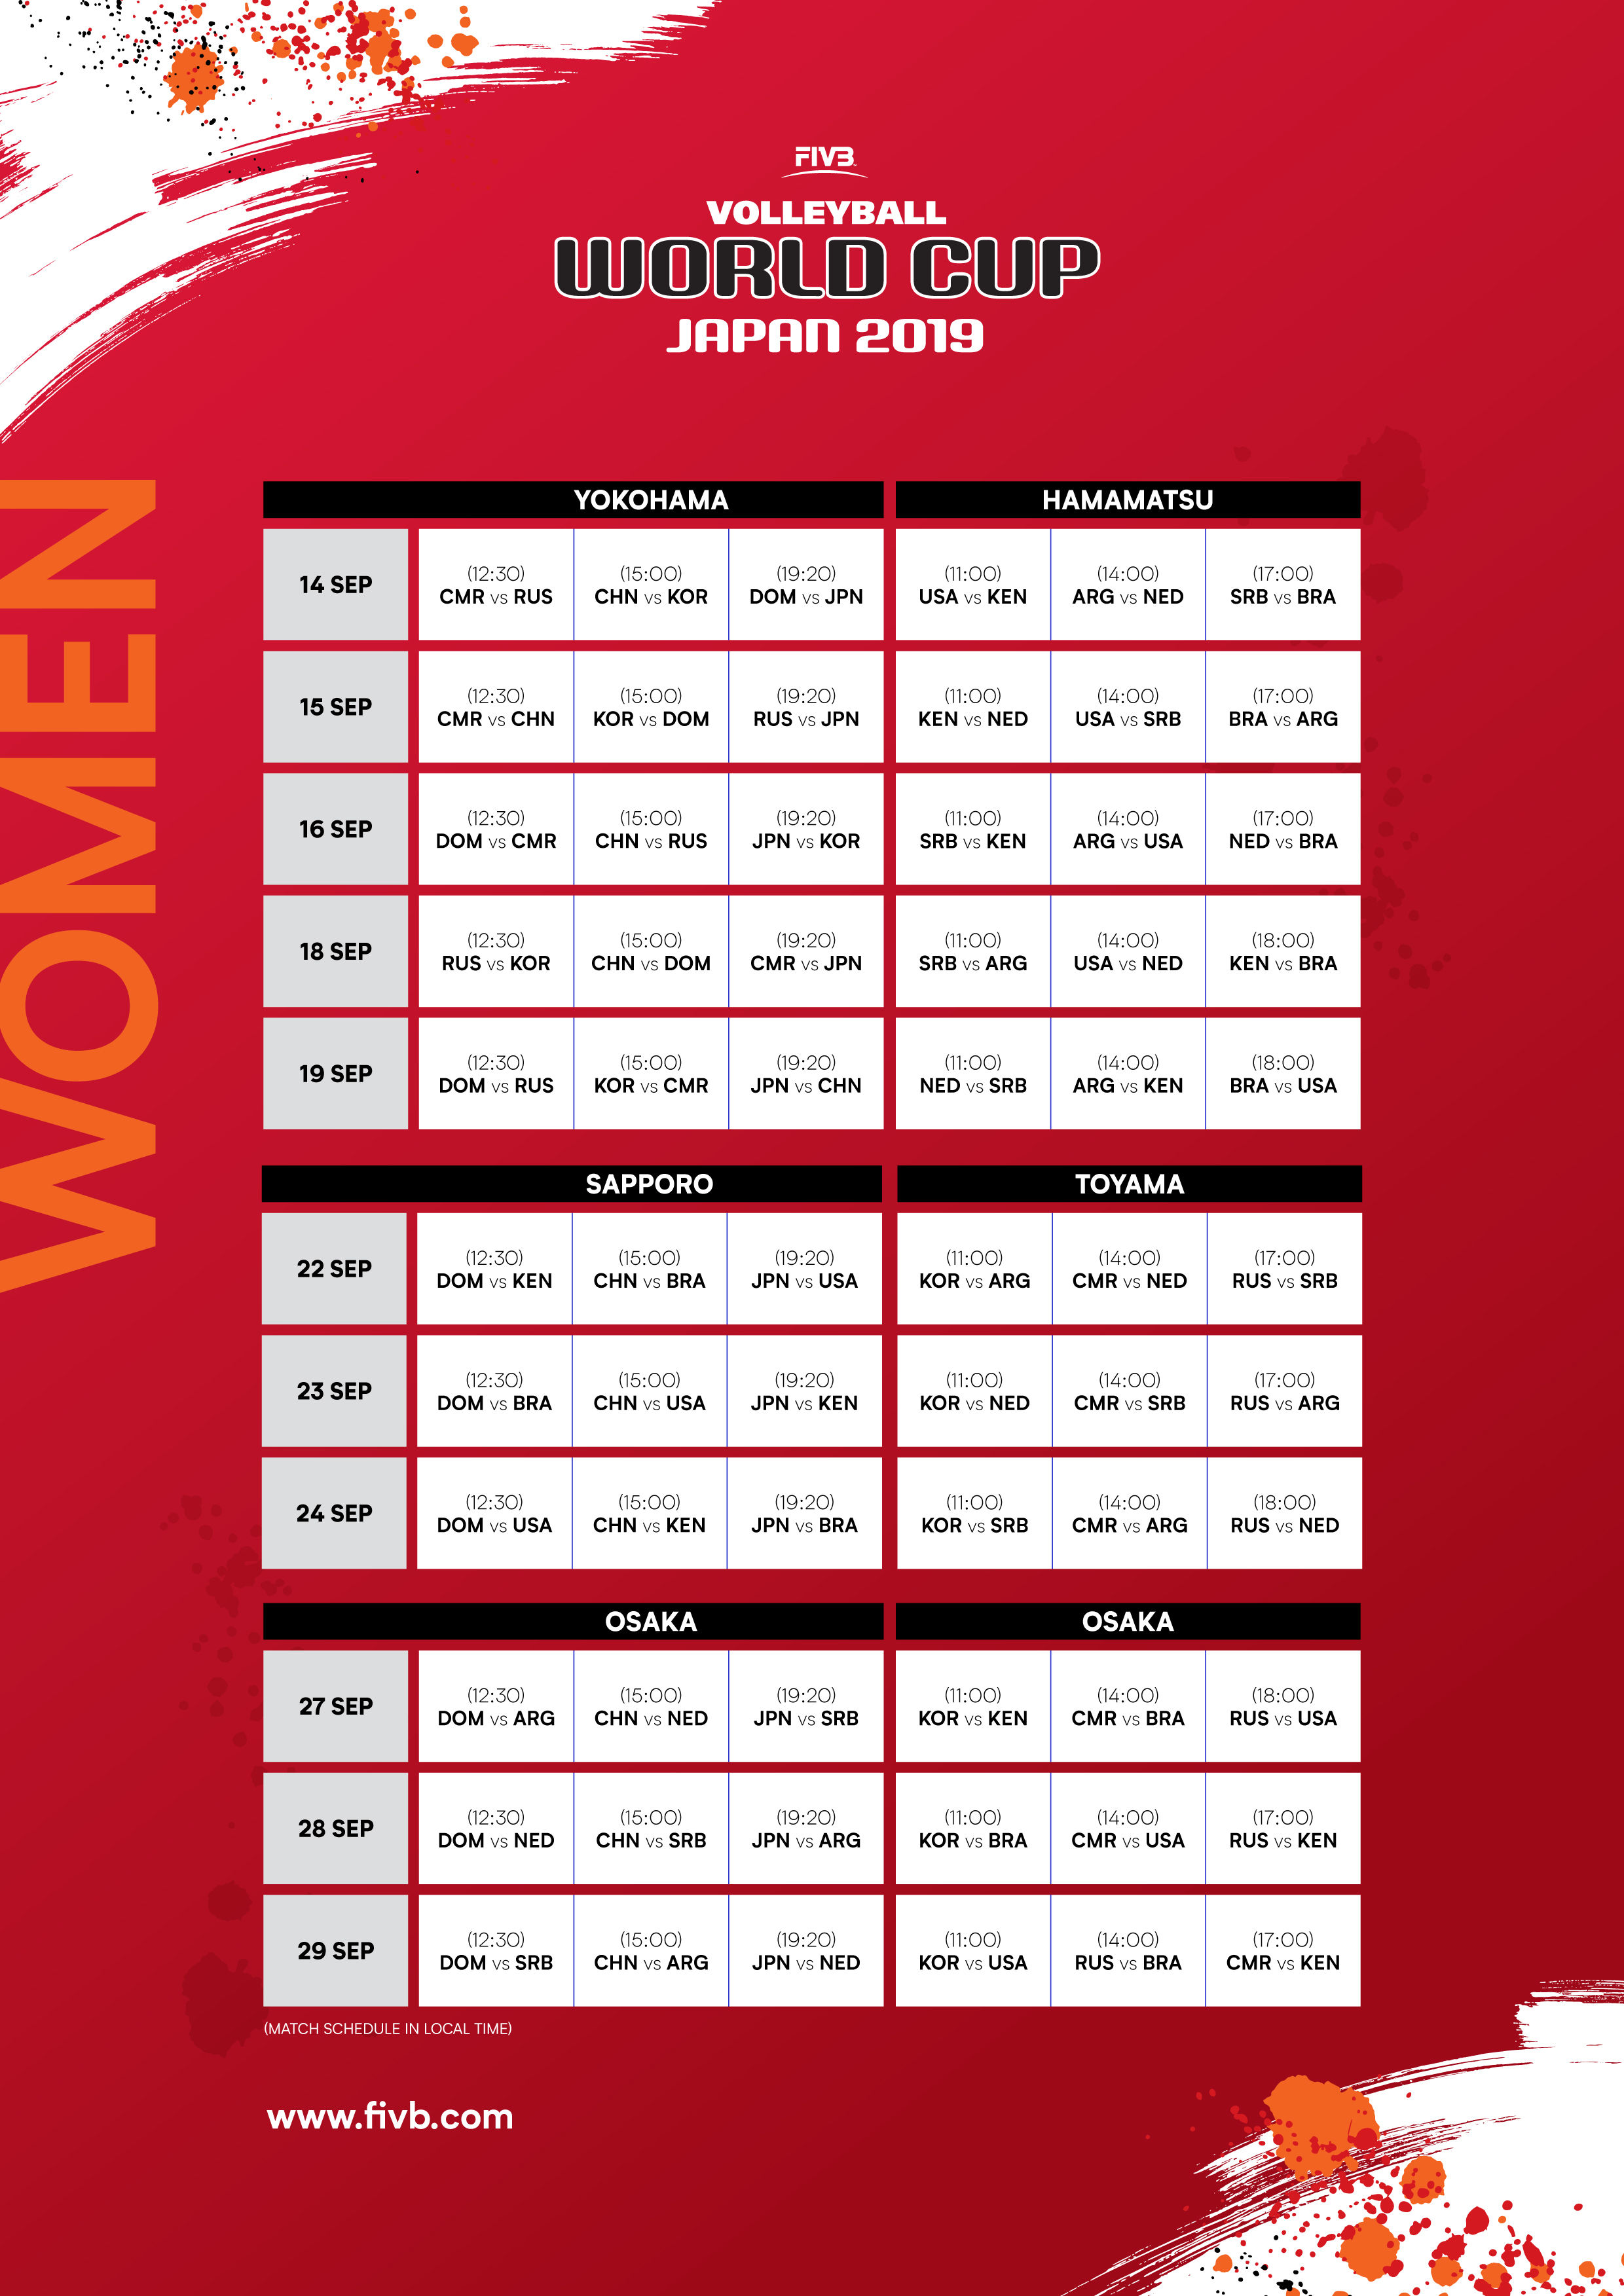 News - 2019 FIVB World Cup match schedule confirmed